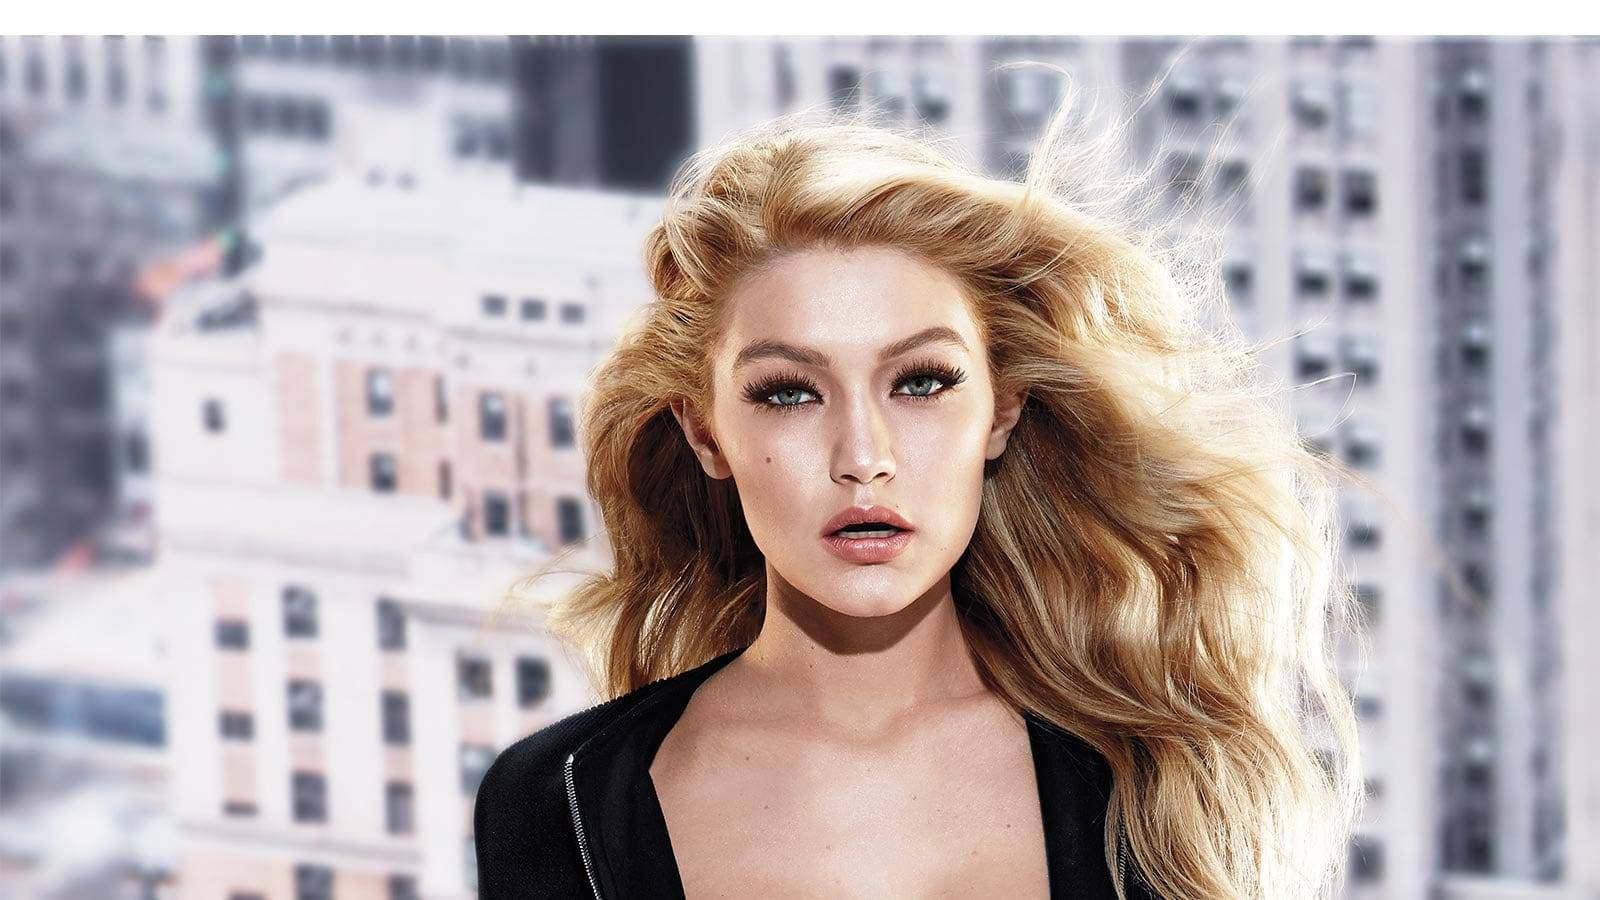 Gigi Hadid Push Up Drama